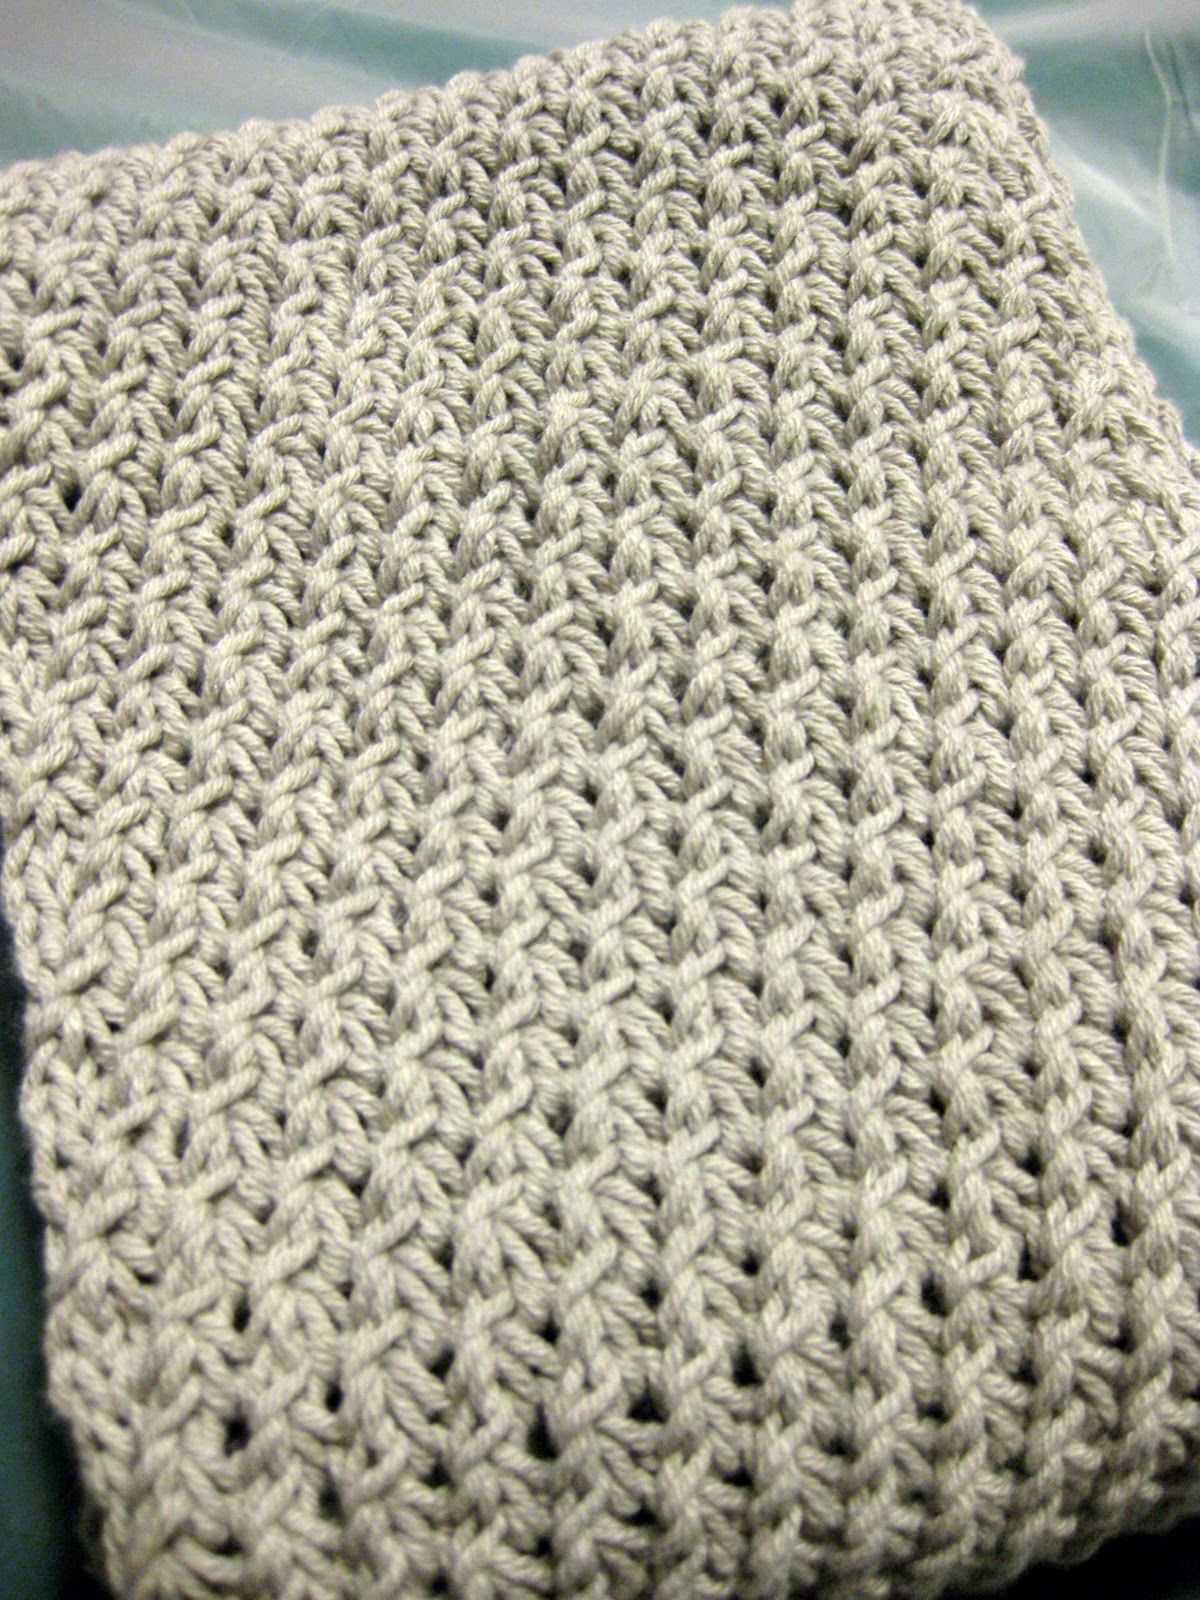 Make knot knit stitch. Link to pattern from blog entry ...